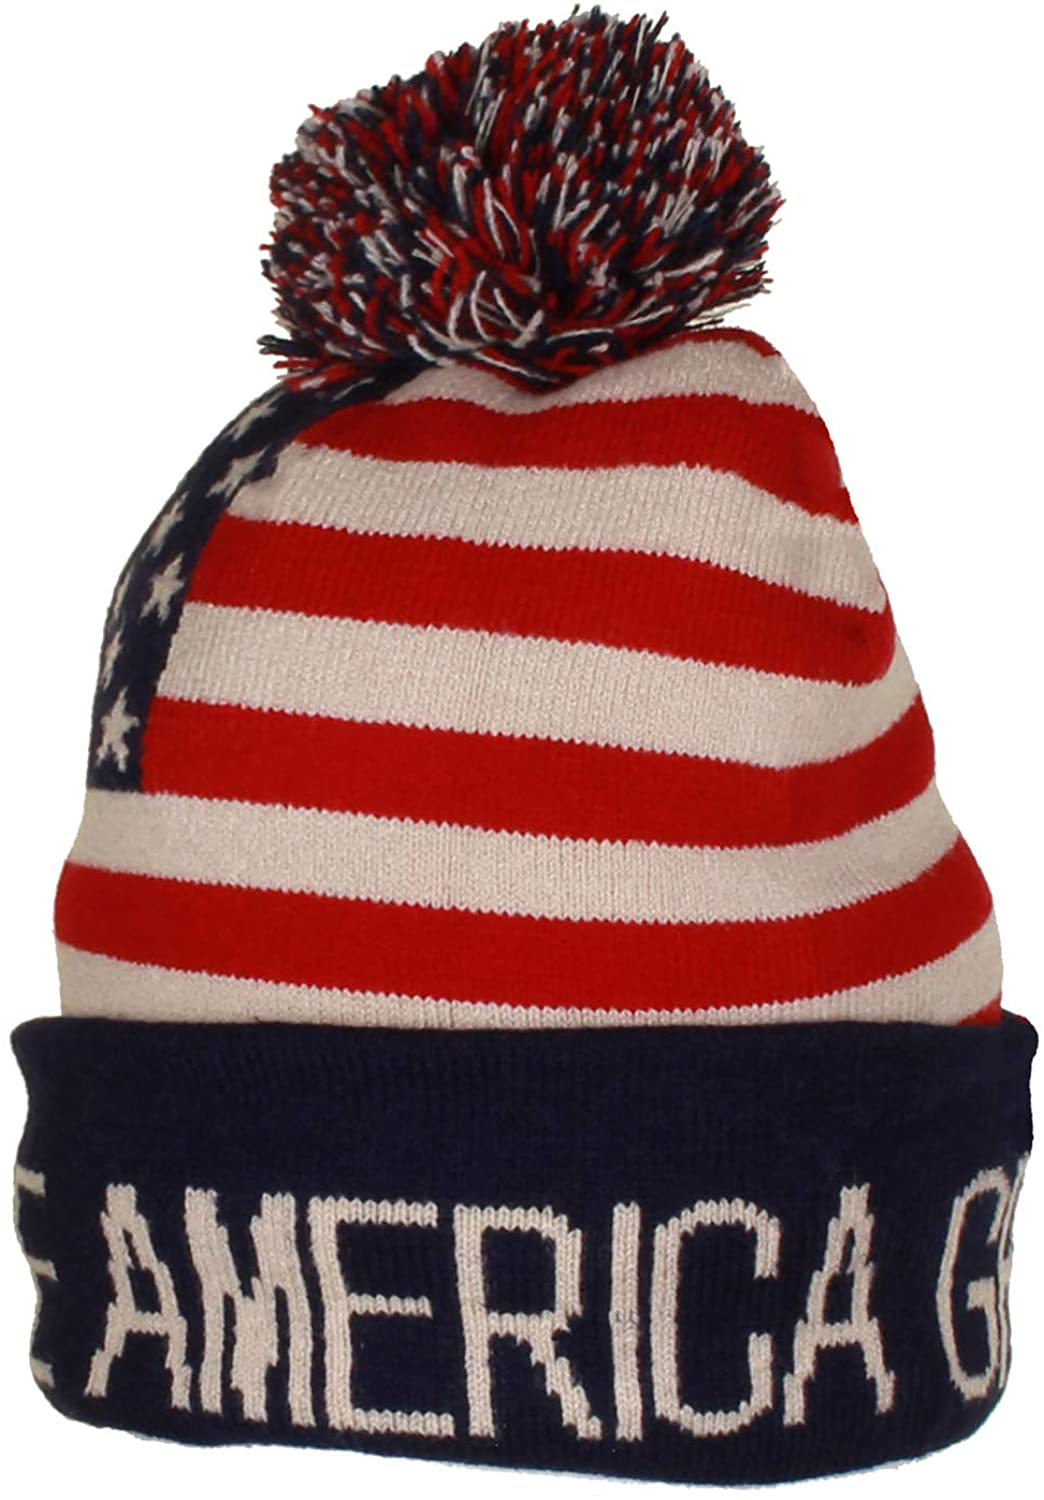 Gilbins Trump Beanie Ski Cap Hat Keep America Great Again, USA Flag Hat, Trump Beanie Hat